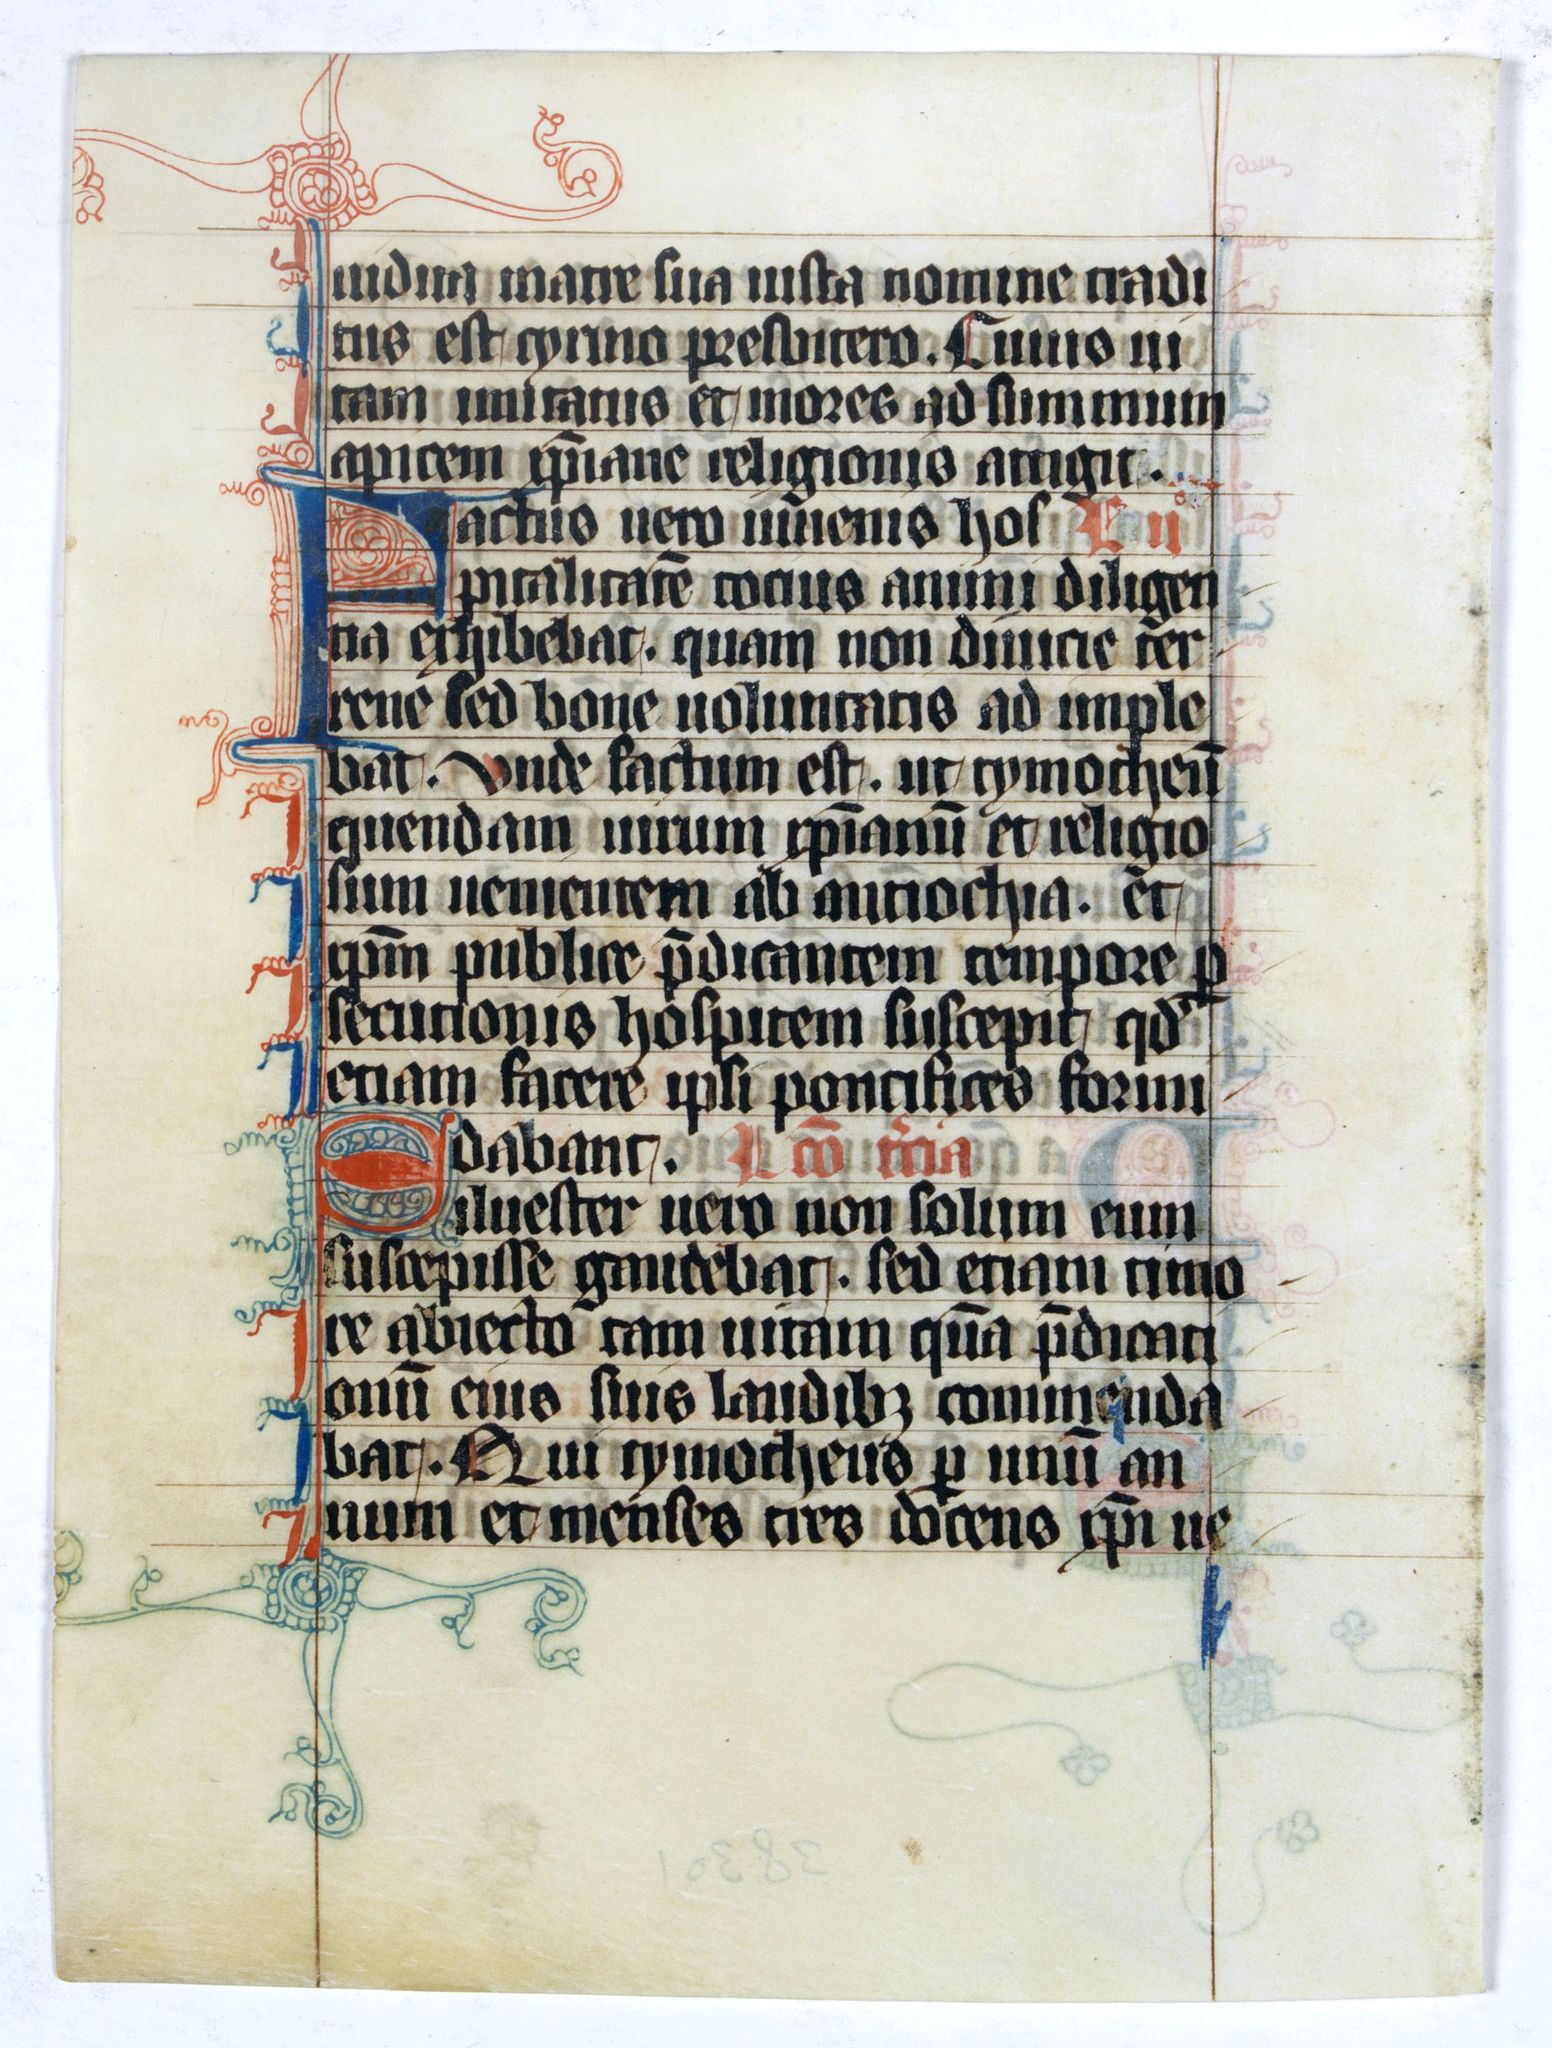 BREVIARY -  Manuscript leaf from a very early [around 1300] Breviary.